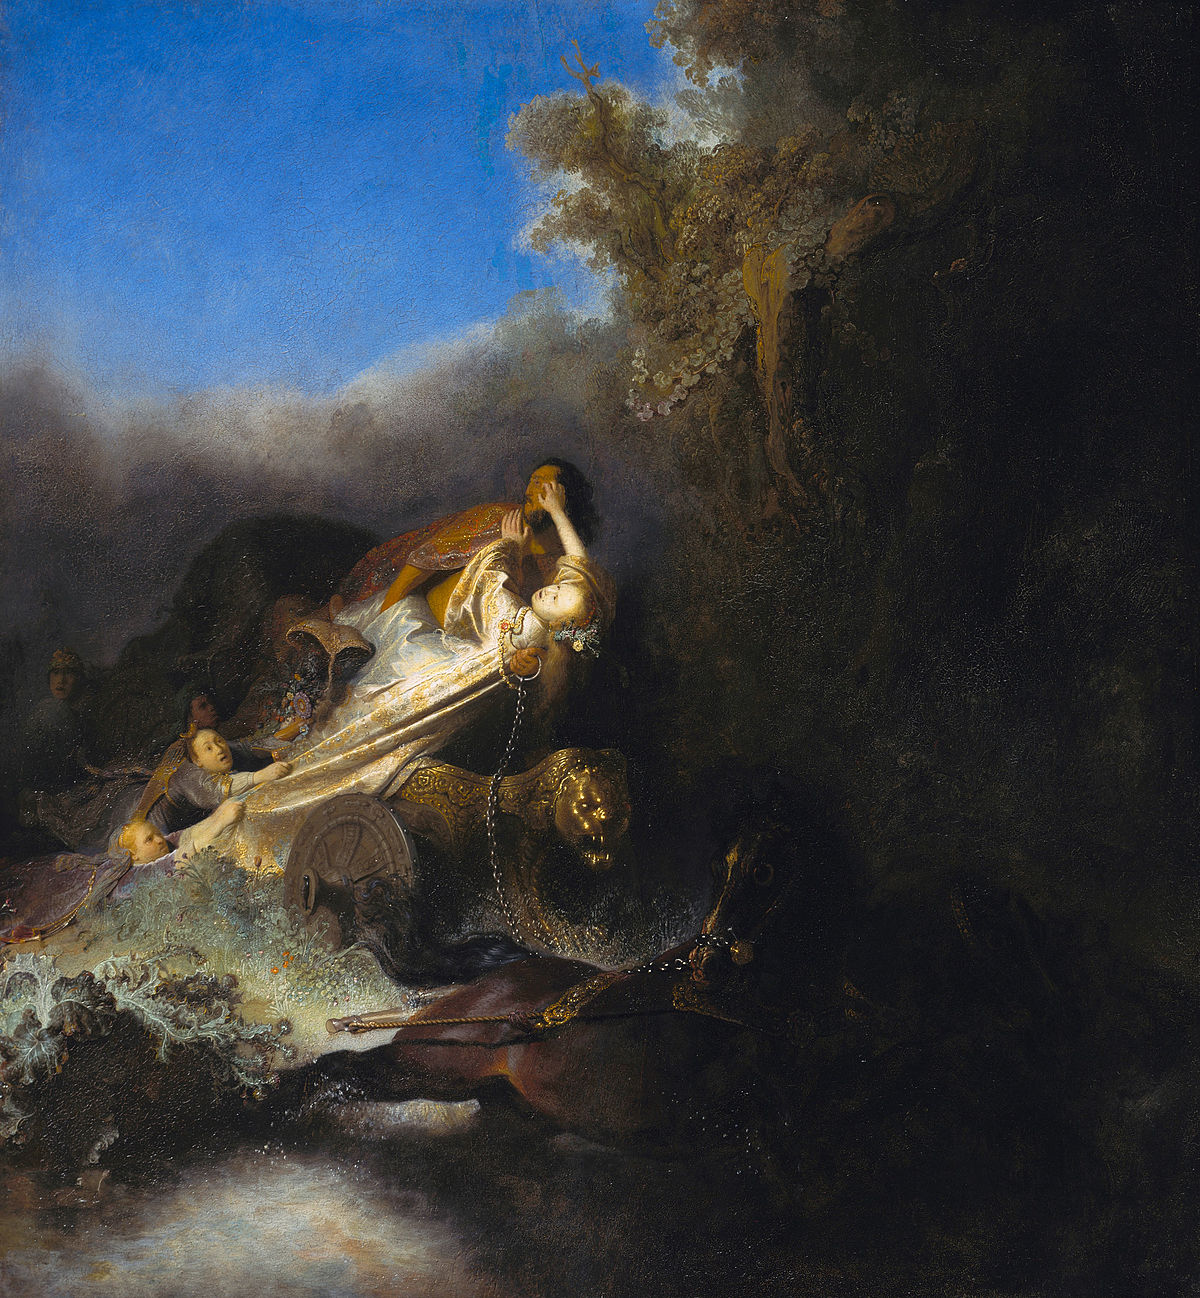 File:Rembrandt - The Rape of Proserpine - Google Art Project.jpg -  Wikimedia Commons